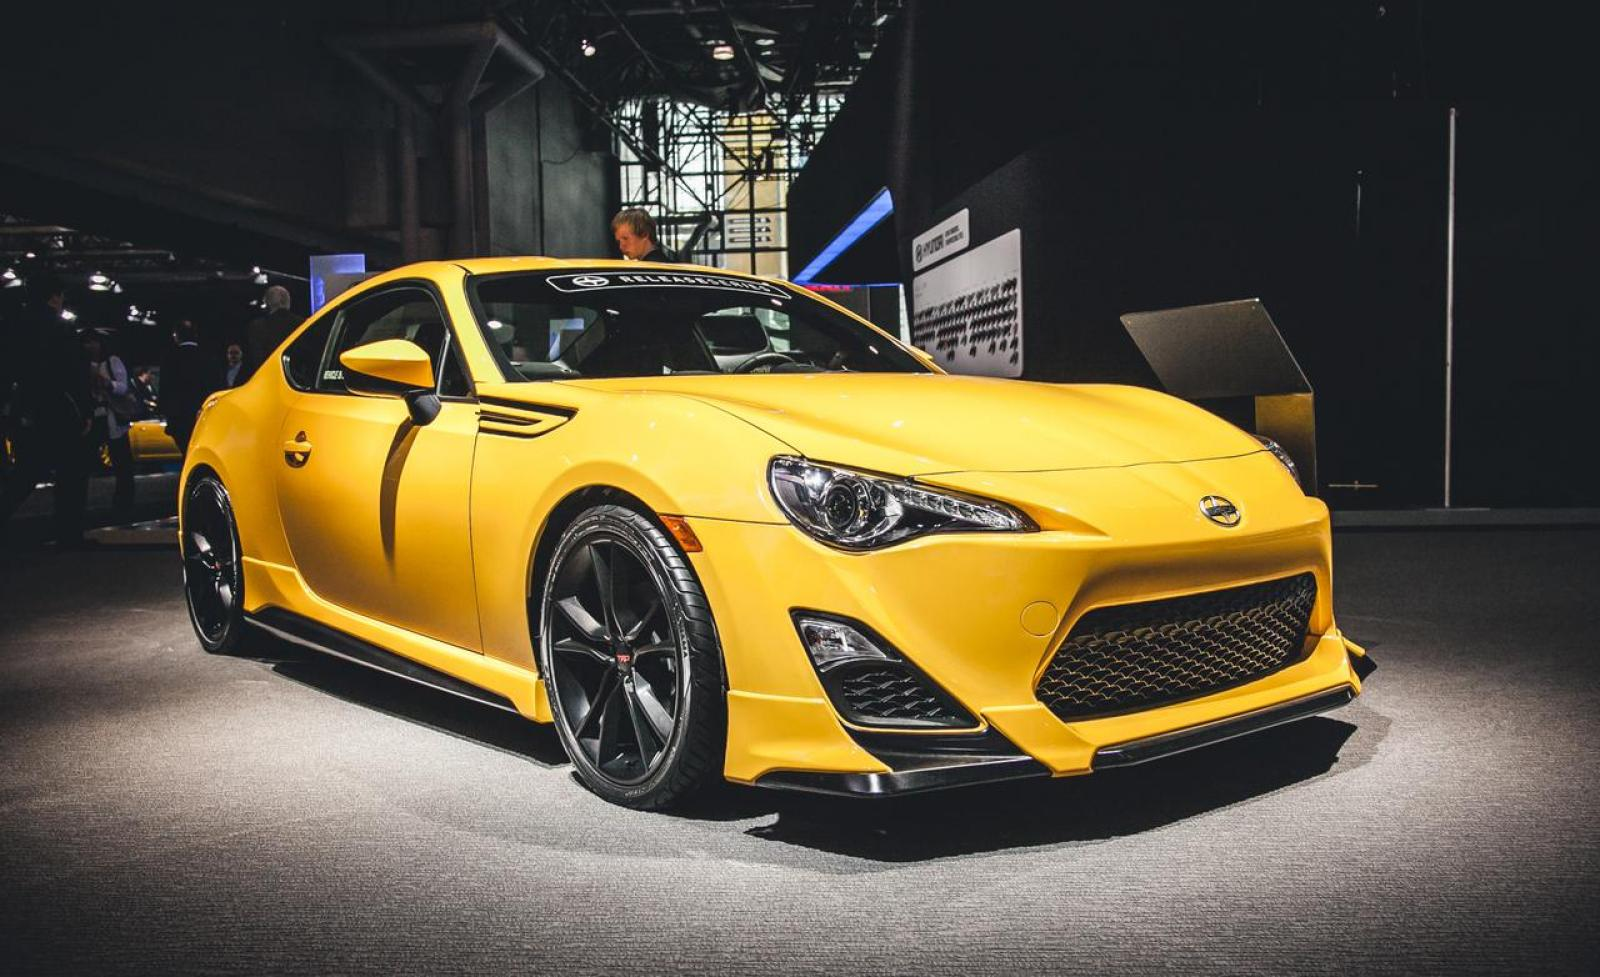 2015 scion fr s information and photos zombiedrive. Black Bedroom Furniture Sets. Home Design Ideas